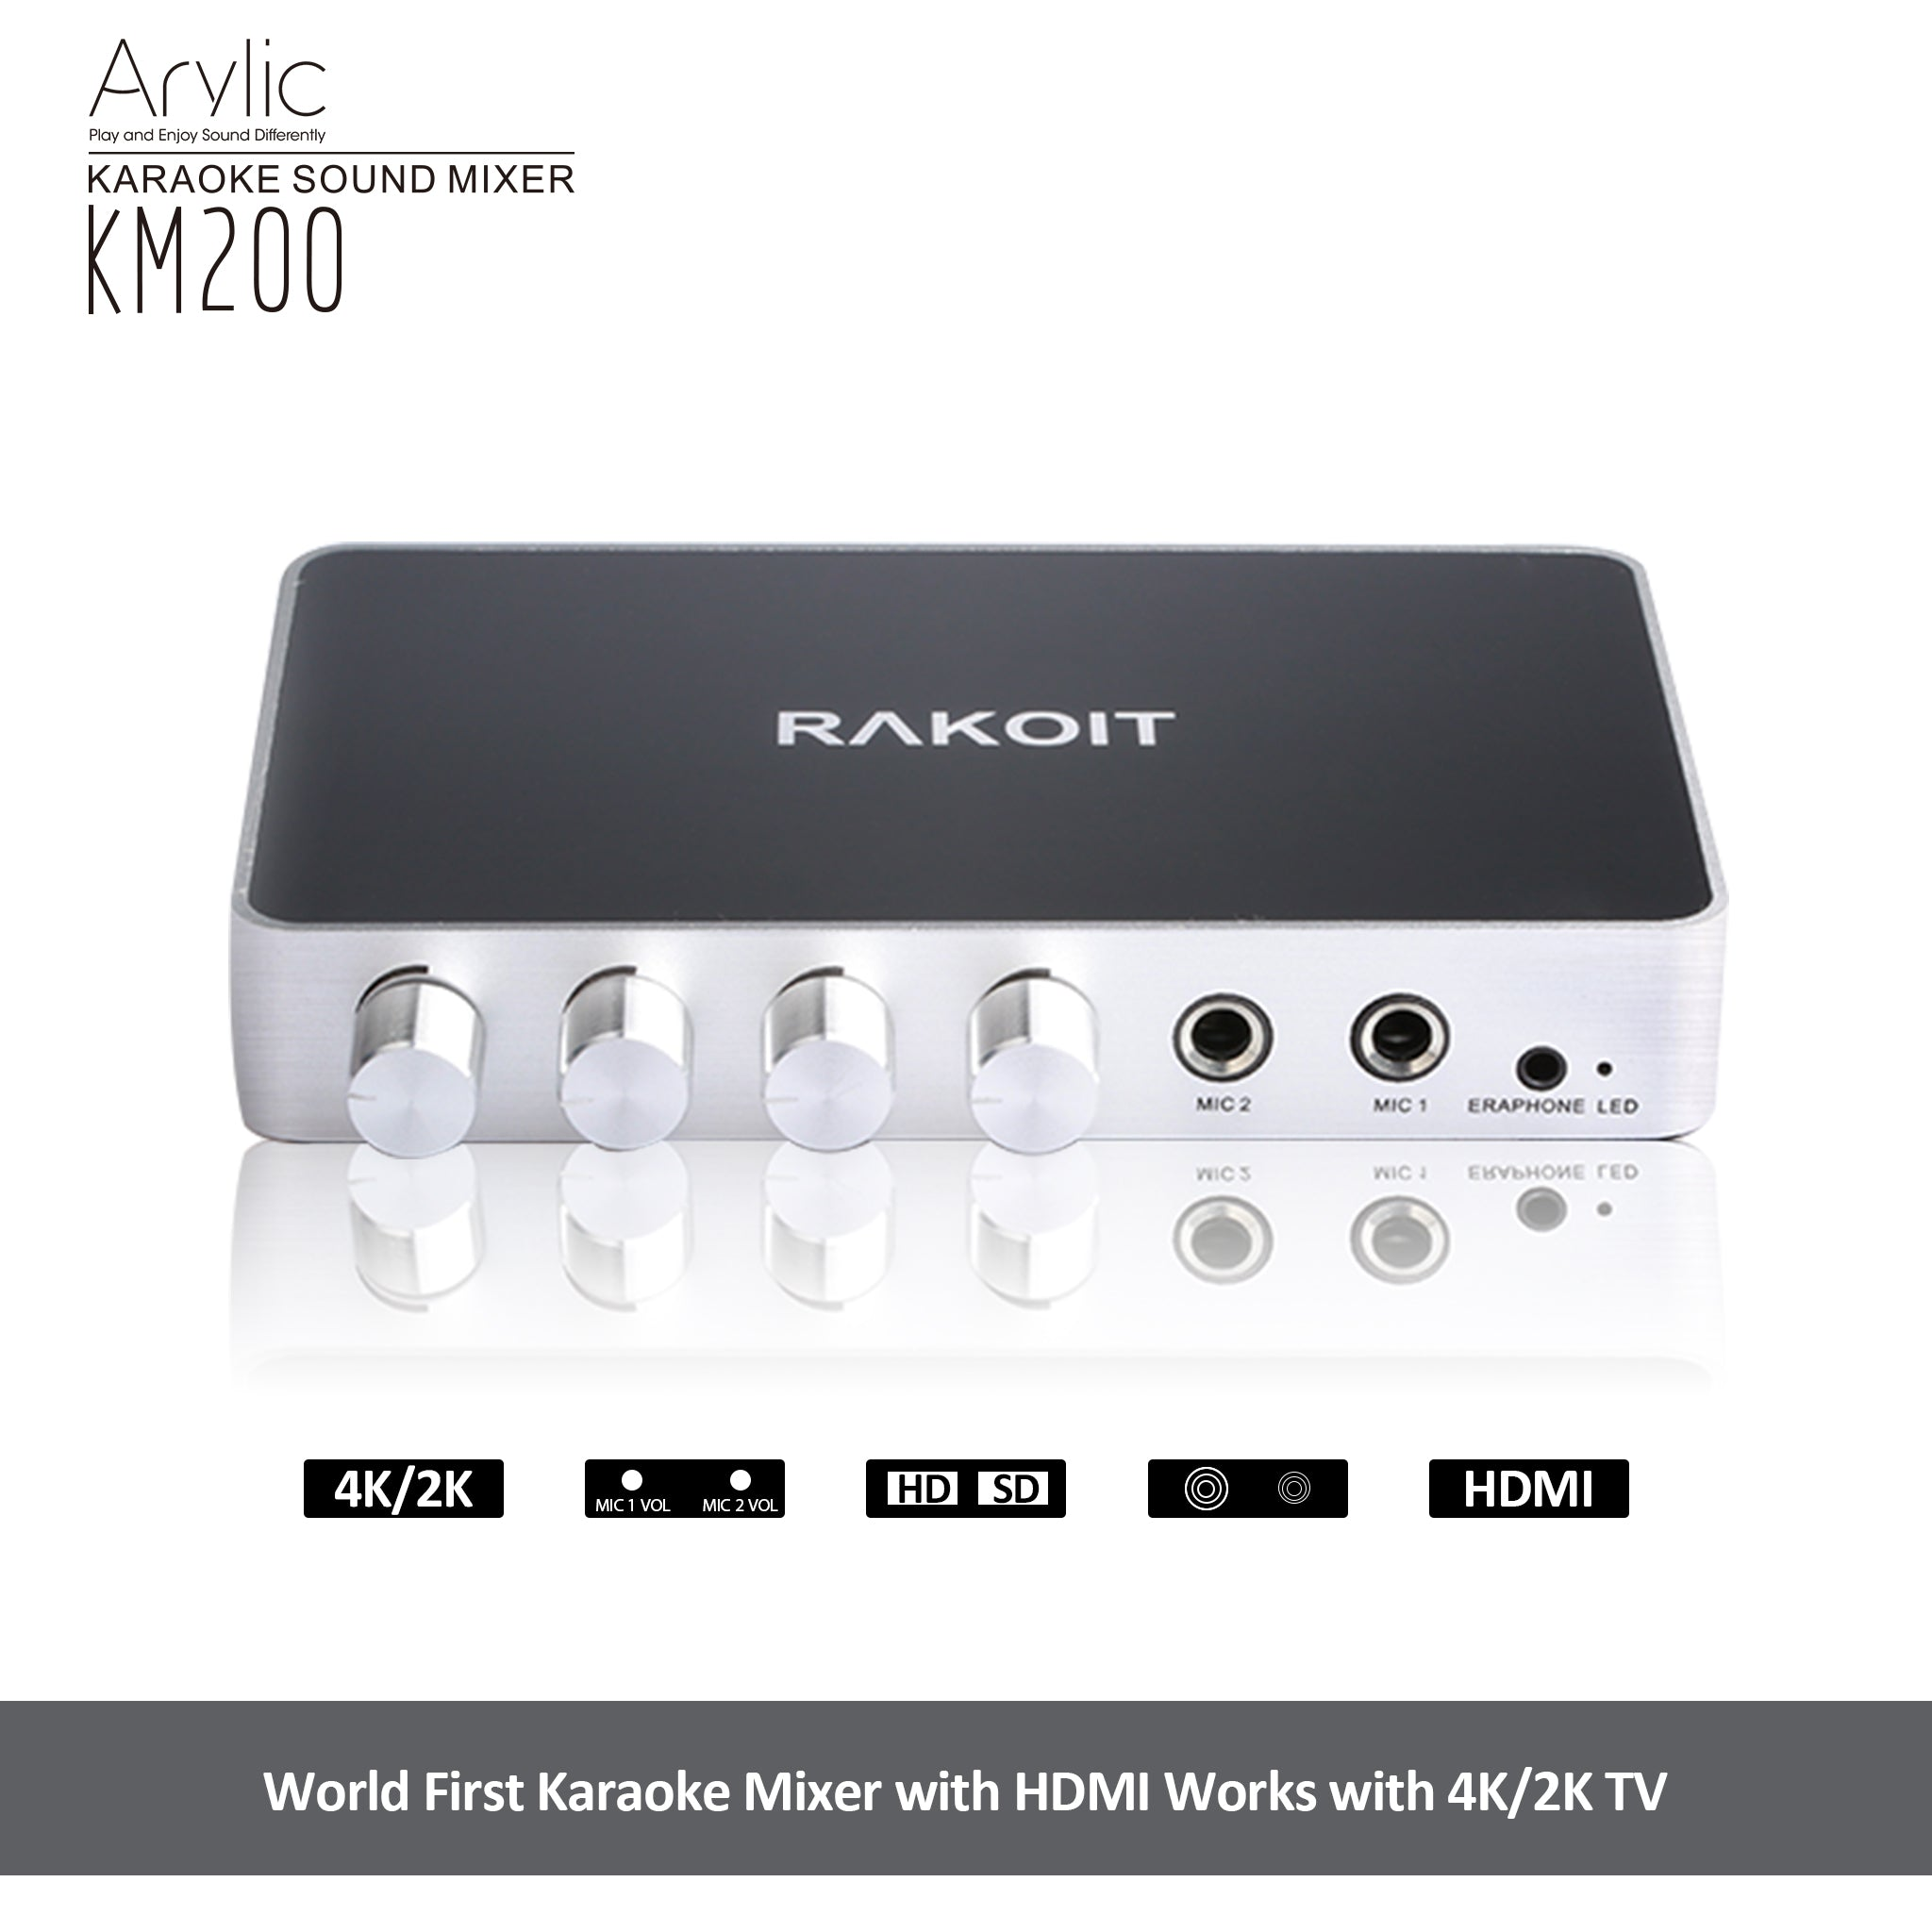 HDMI karaoke mixer support 4k and 2k tv